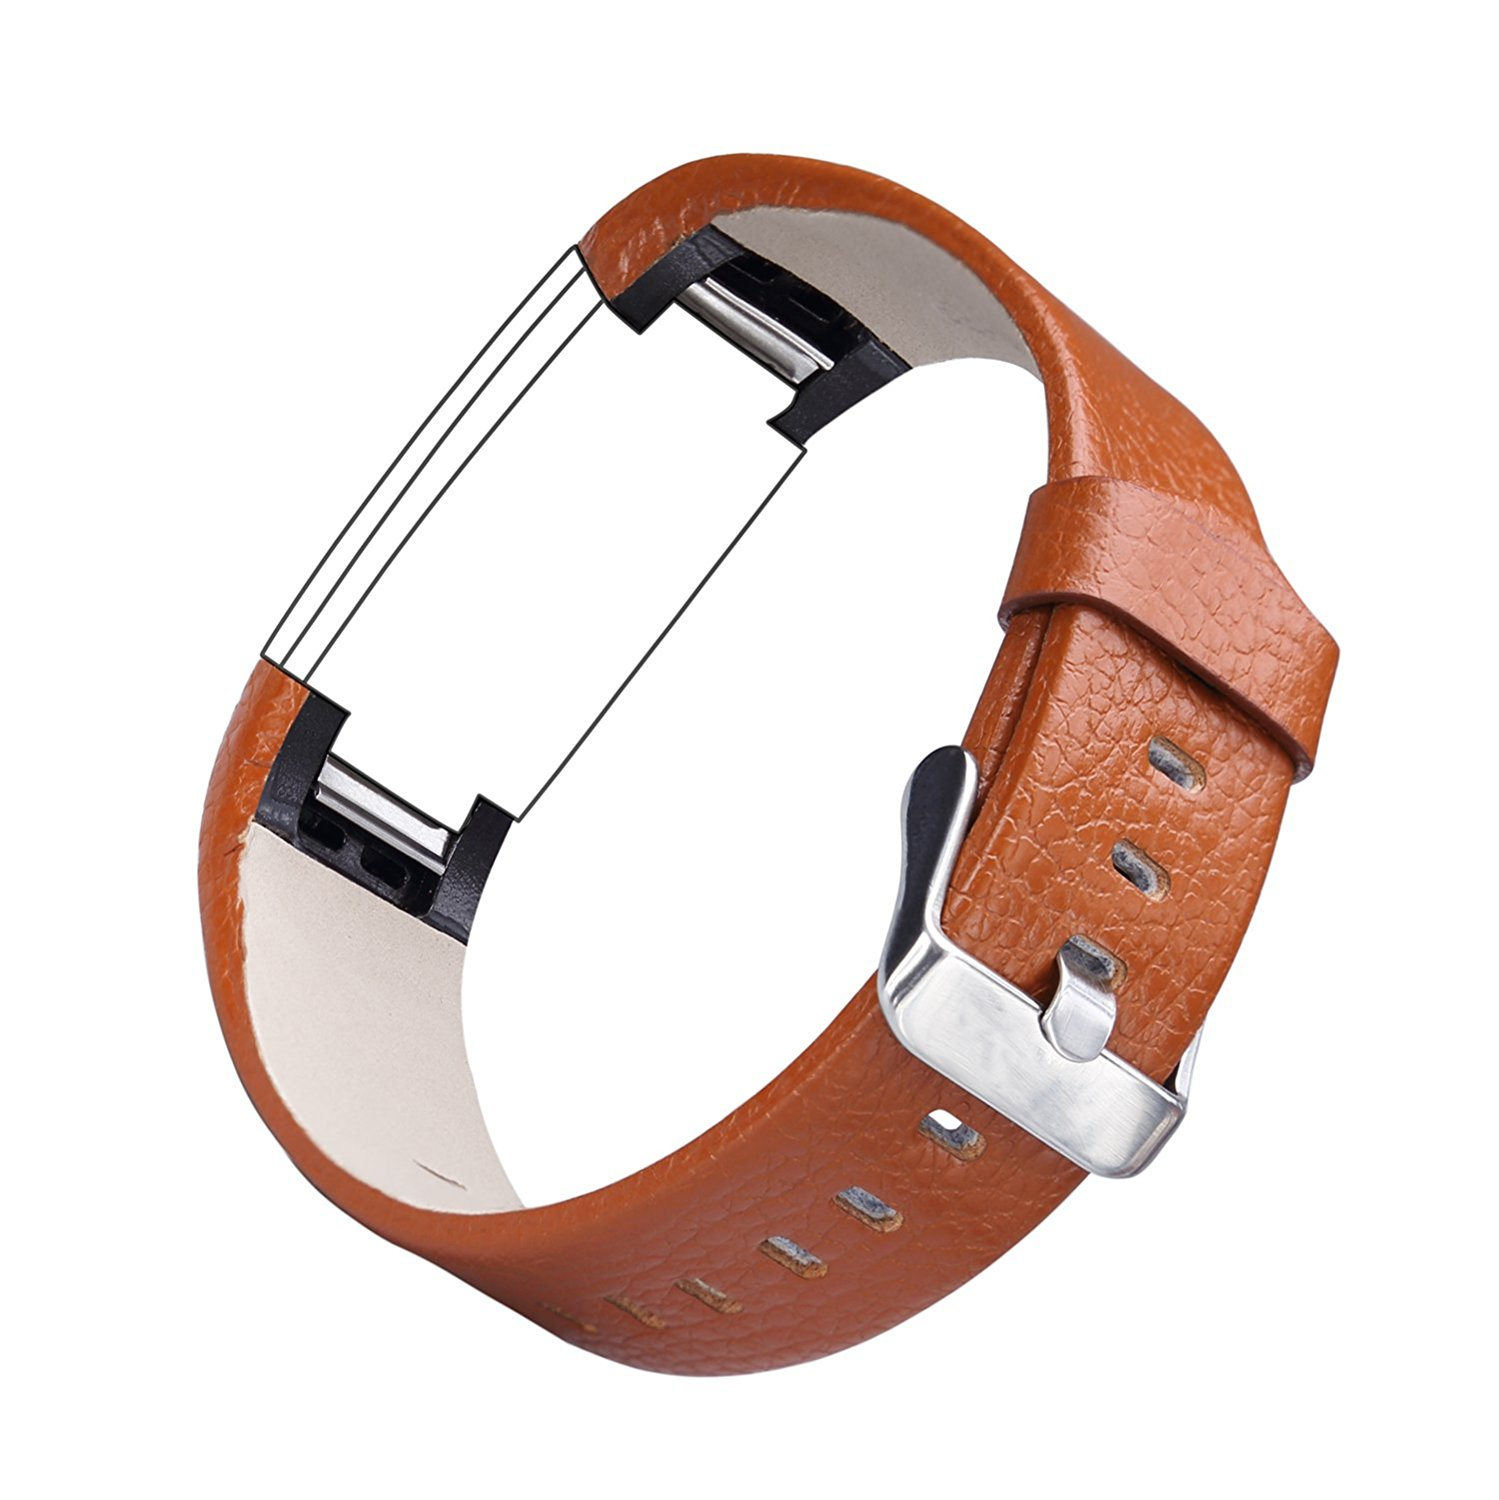 For Fitbit Charge 2,CreateGreat Leather Replacement Band for Charge 2 /Charge 2 Fitbit/Fitbit Charge 2